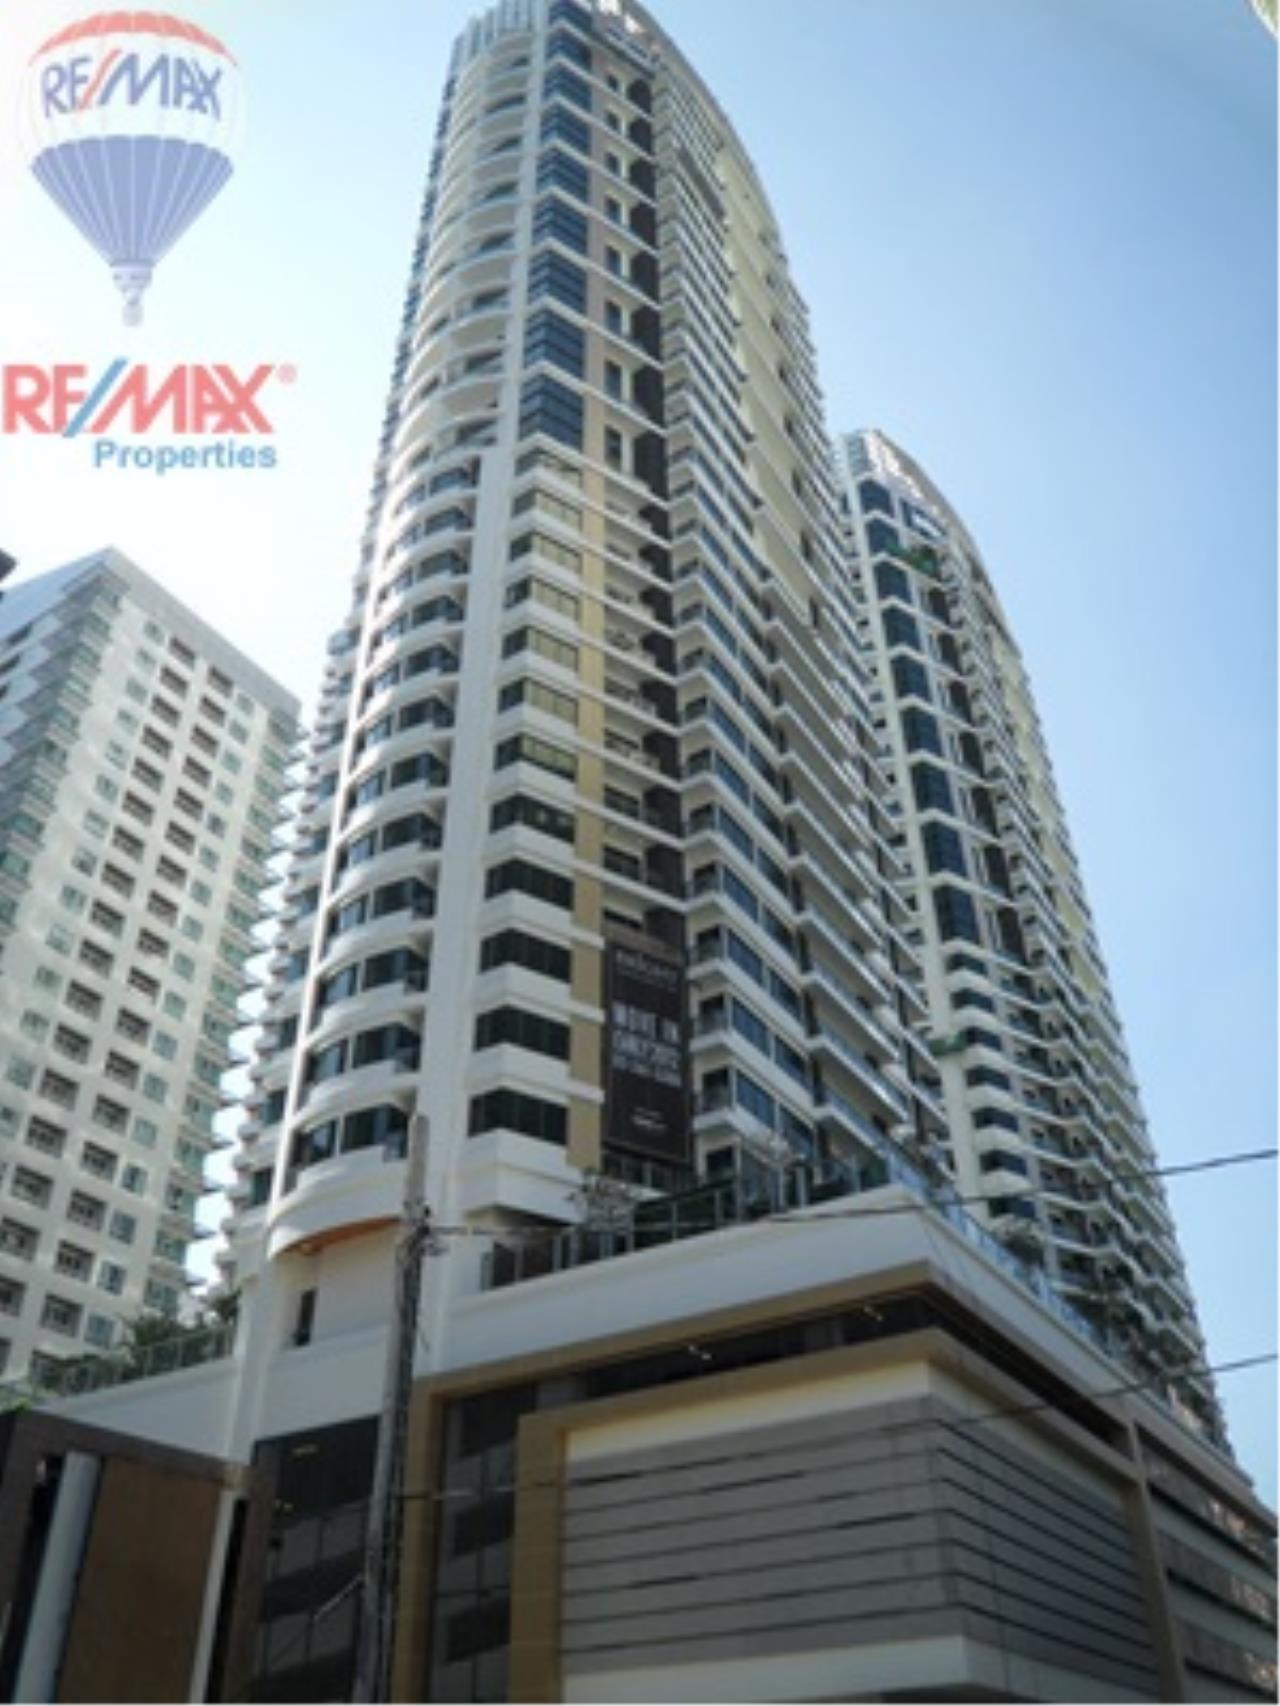 RE/MAX Properties Agency's Rent 2 Bedrooms 92 sq.m at Bright Sukhumvit 24 11